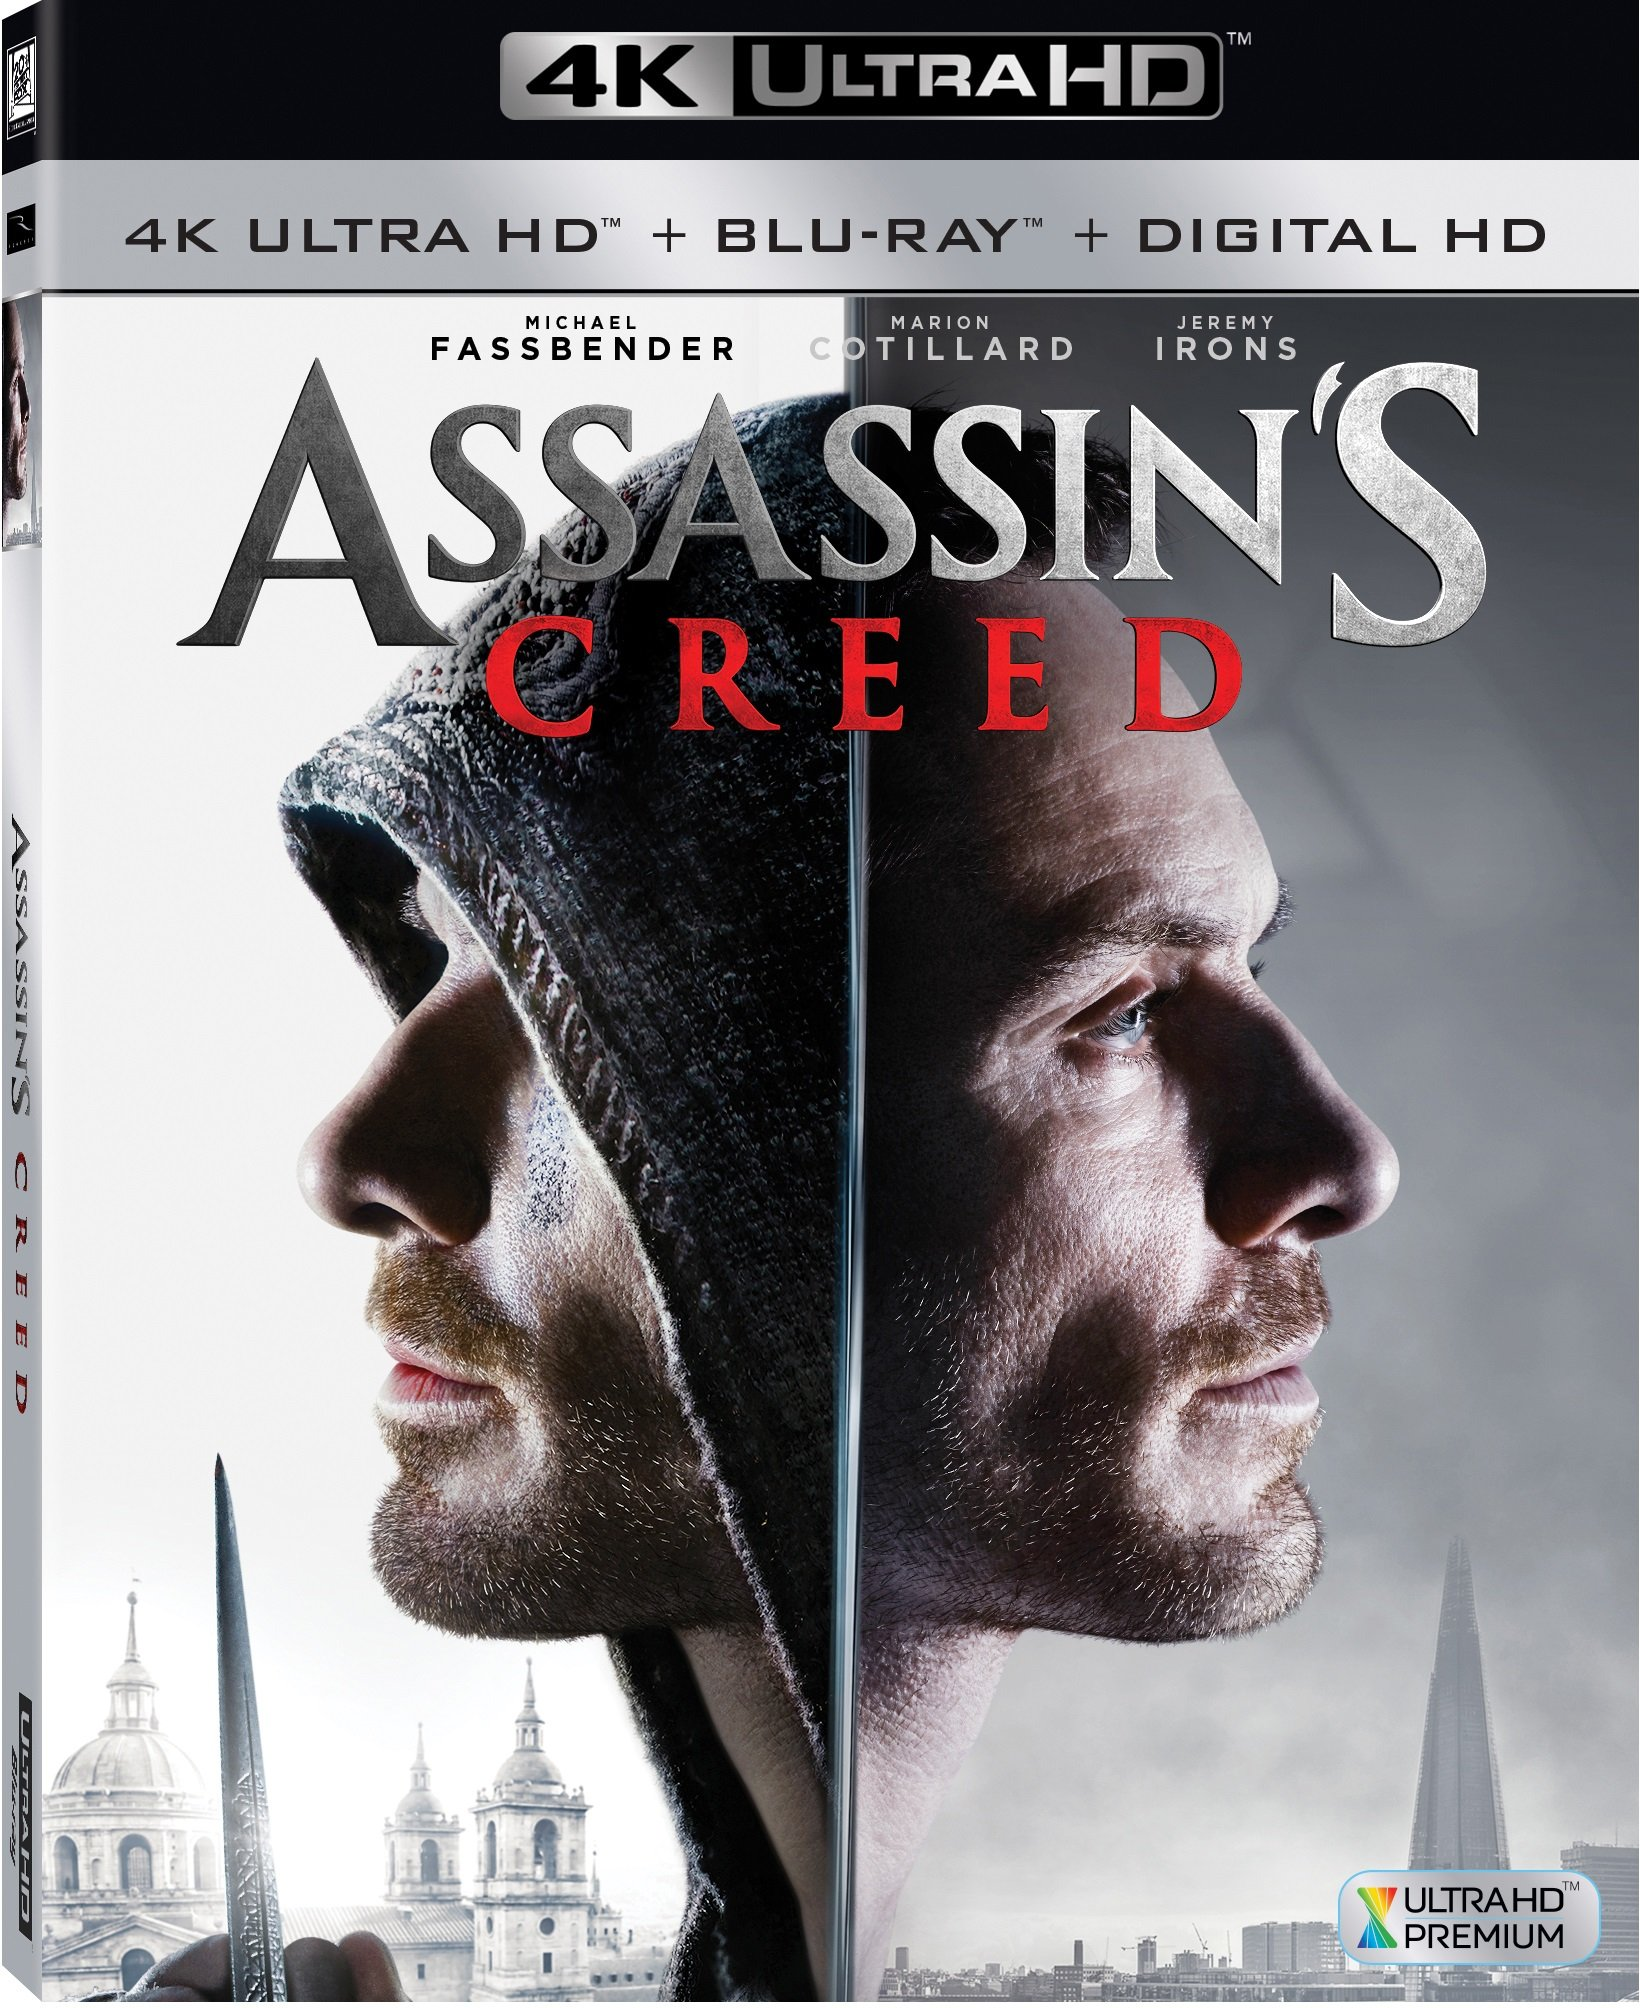 Assassins Creed 2016 Bdrip German Webaudio Dubbed XviD-Ps